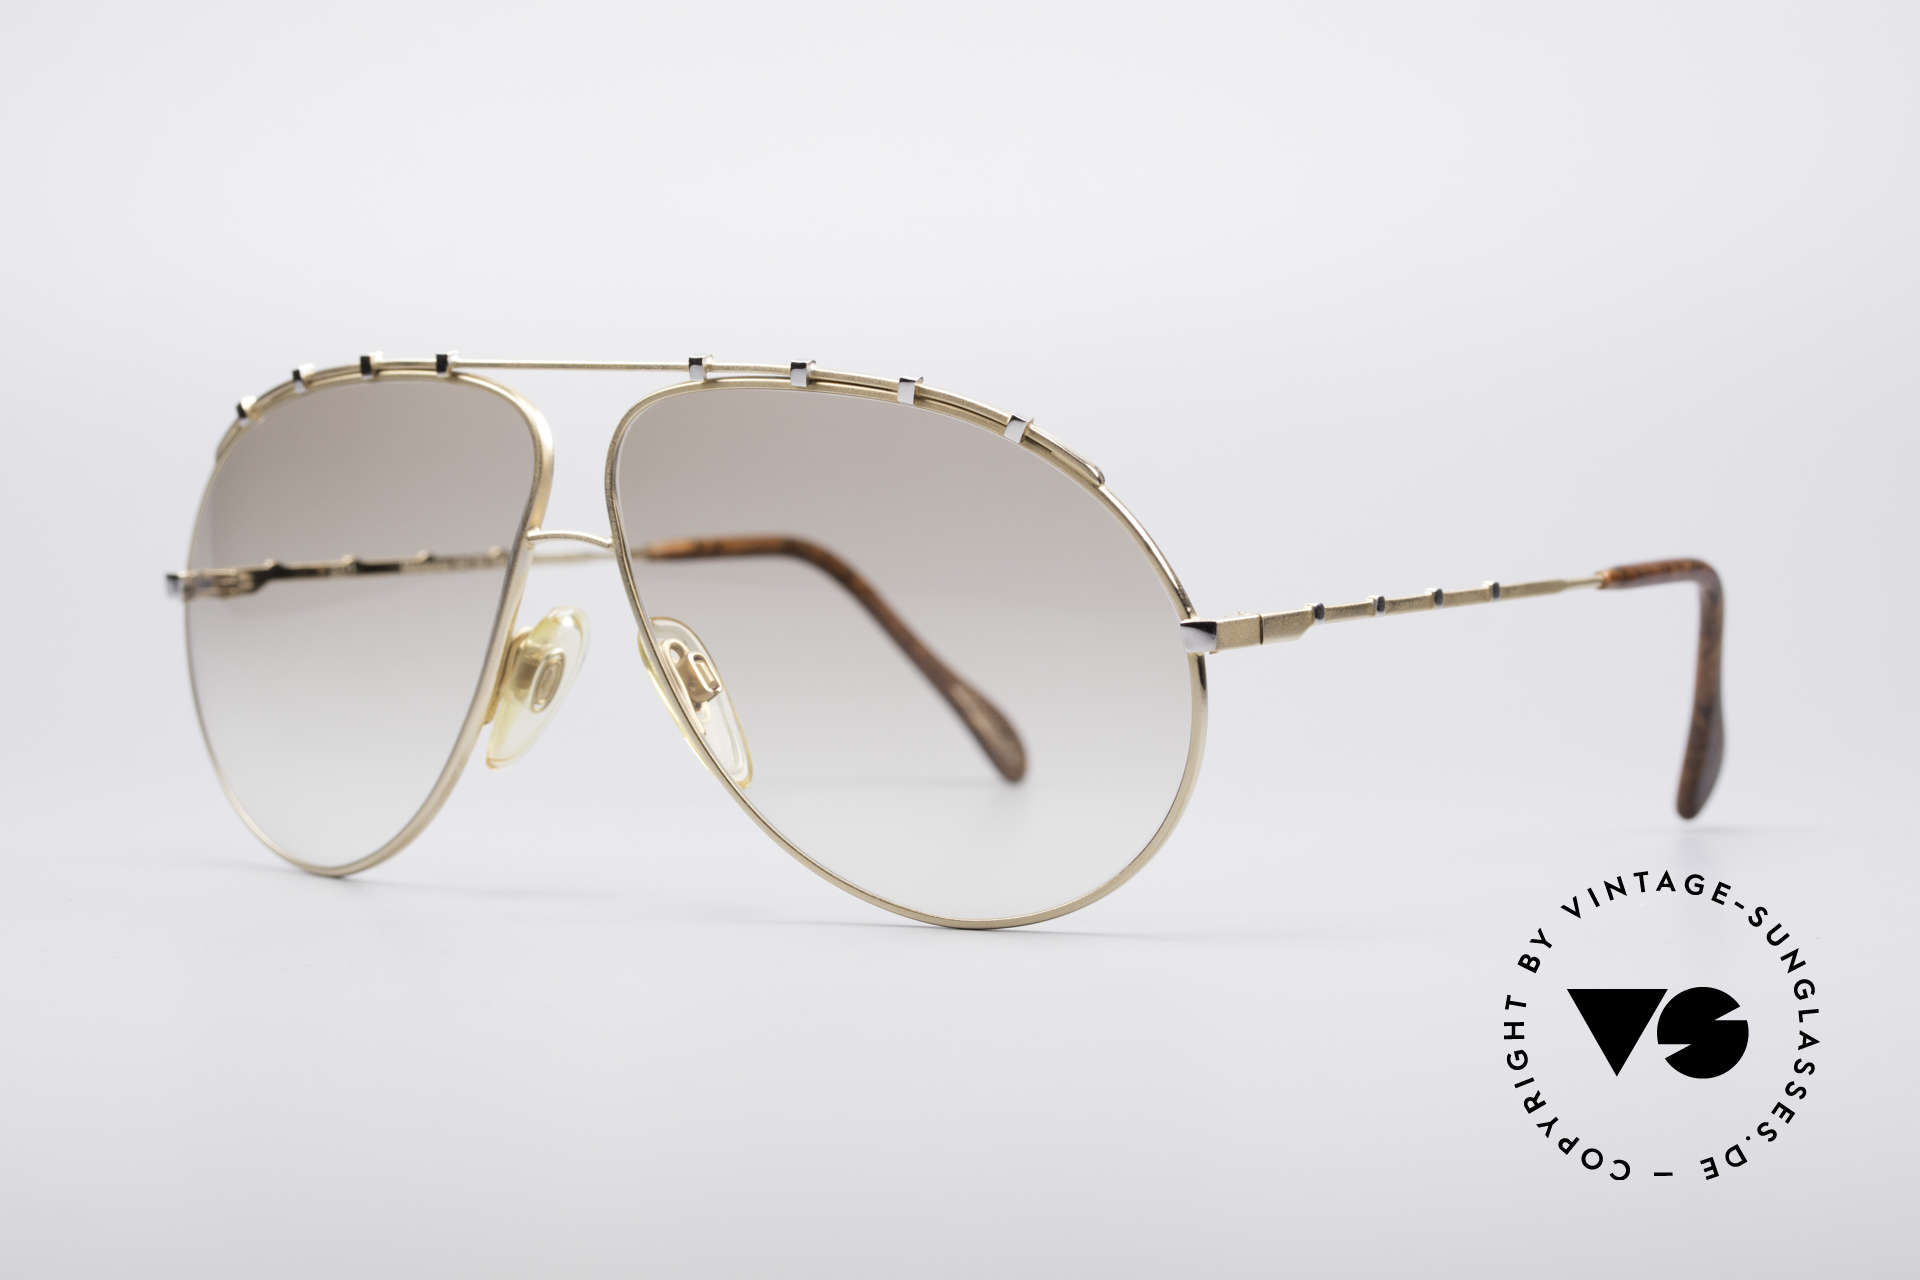 Zollitsch Marquise Rare Vintage Shades, stylish gold designer piece with small silver rivets, Made for Men